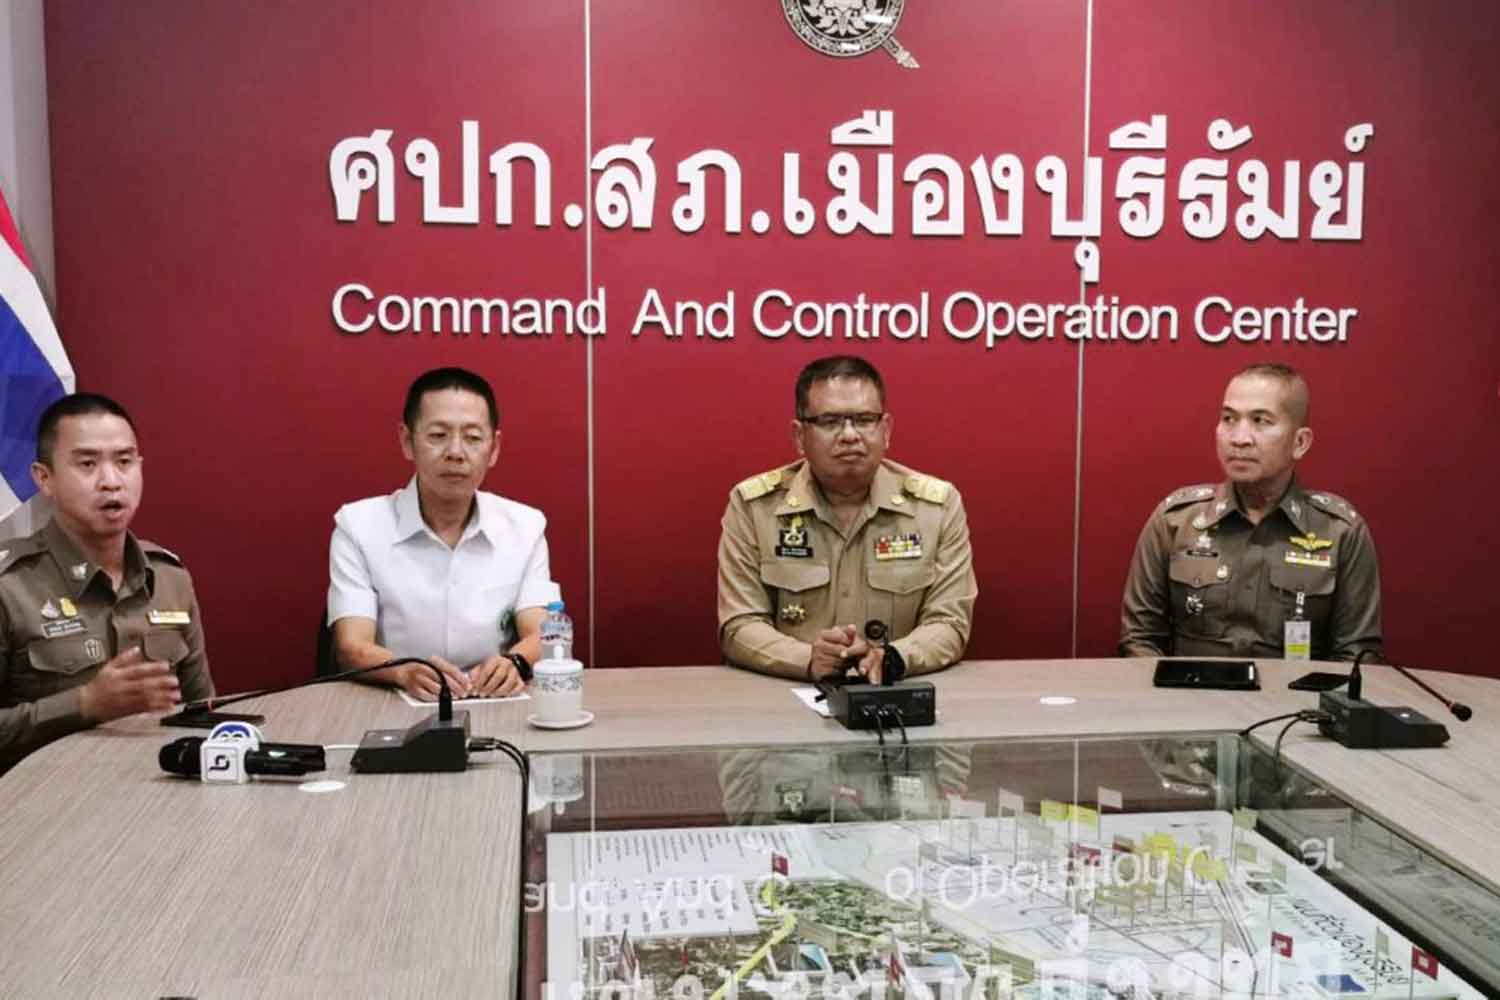 Buri Ram governor Thatchakorn Hathathayakul, centre, at a press conference at the police command and control operation centre on Monday night. (Photo: Surachai Piragsa)